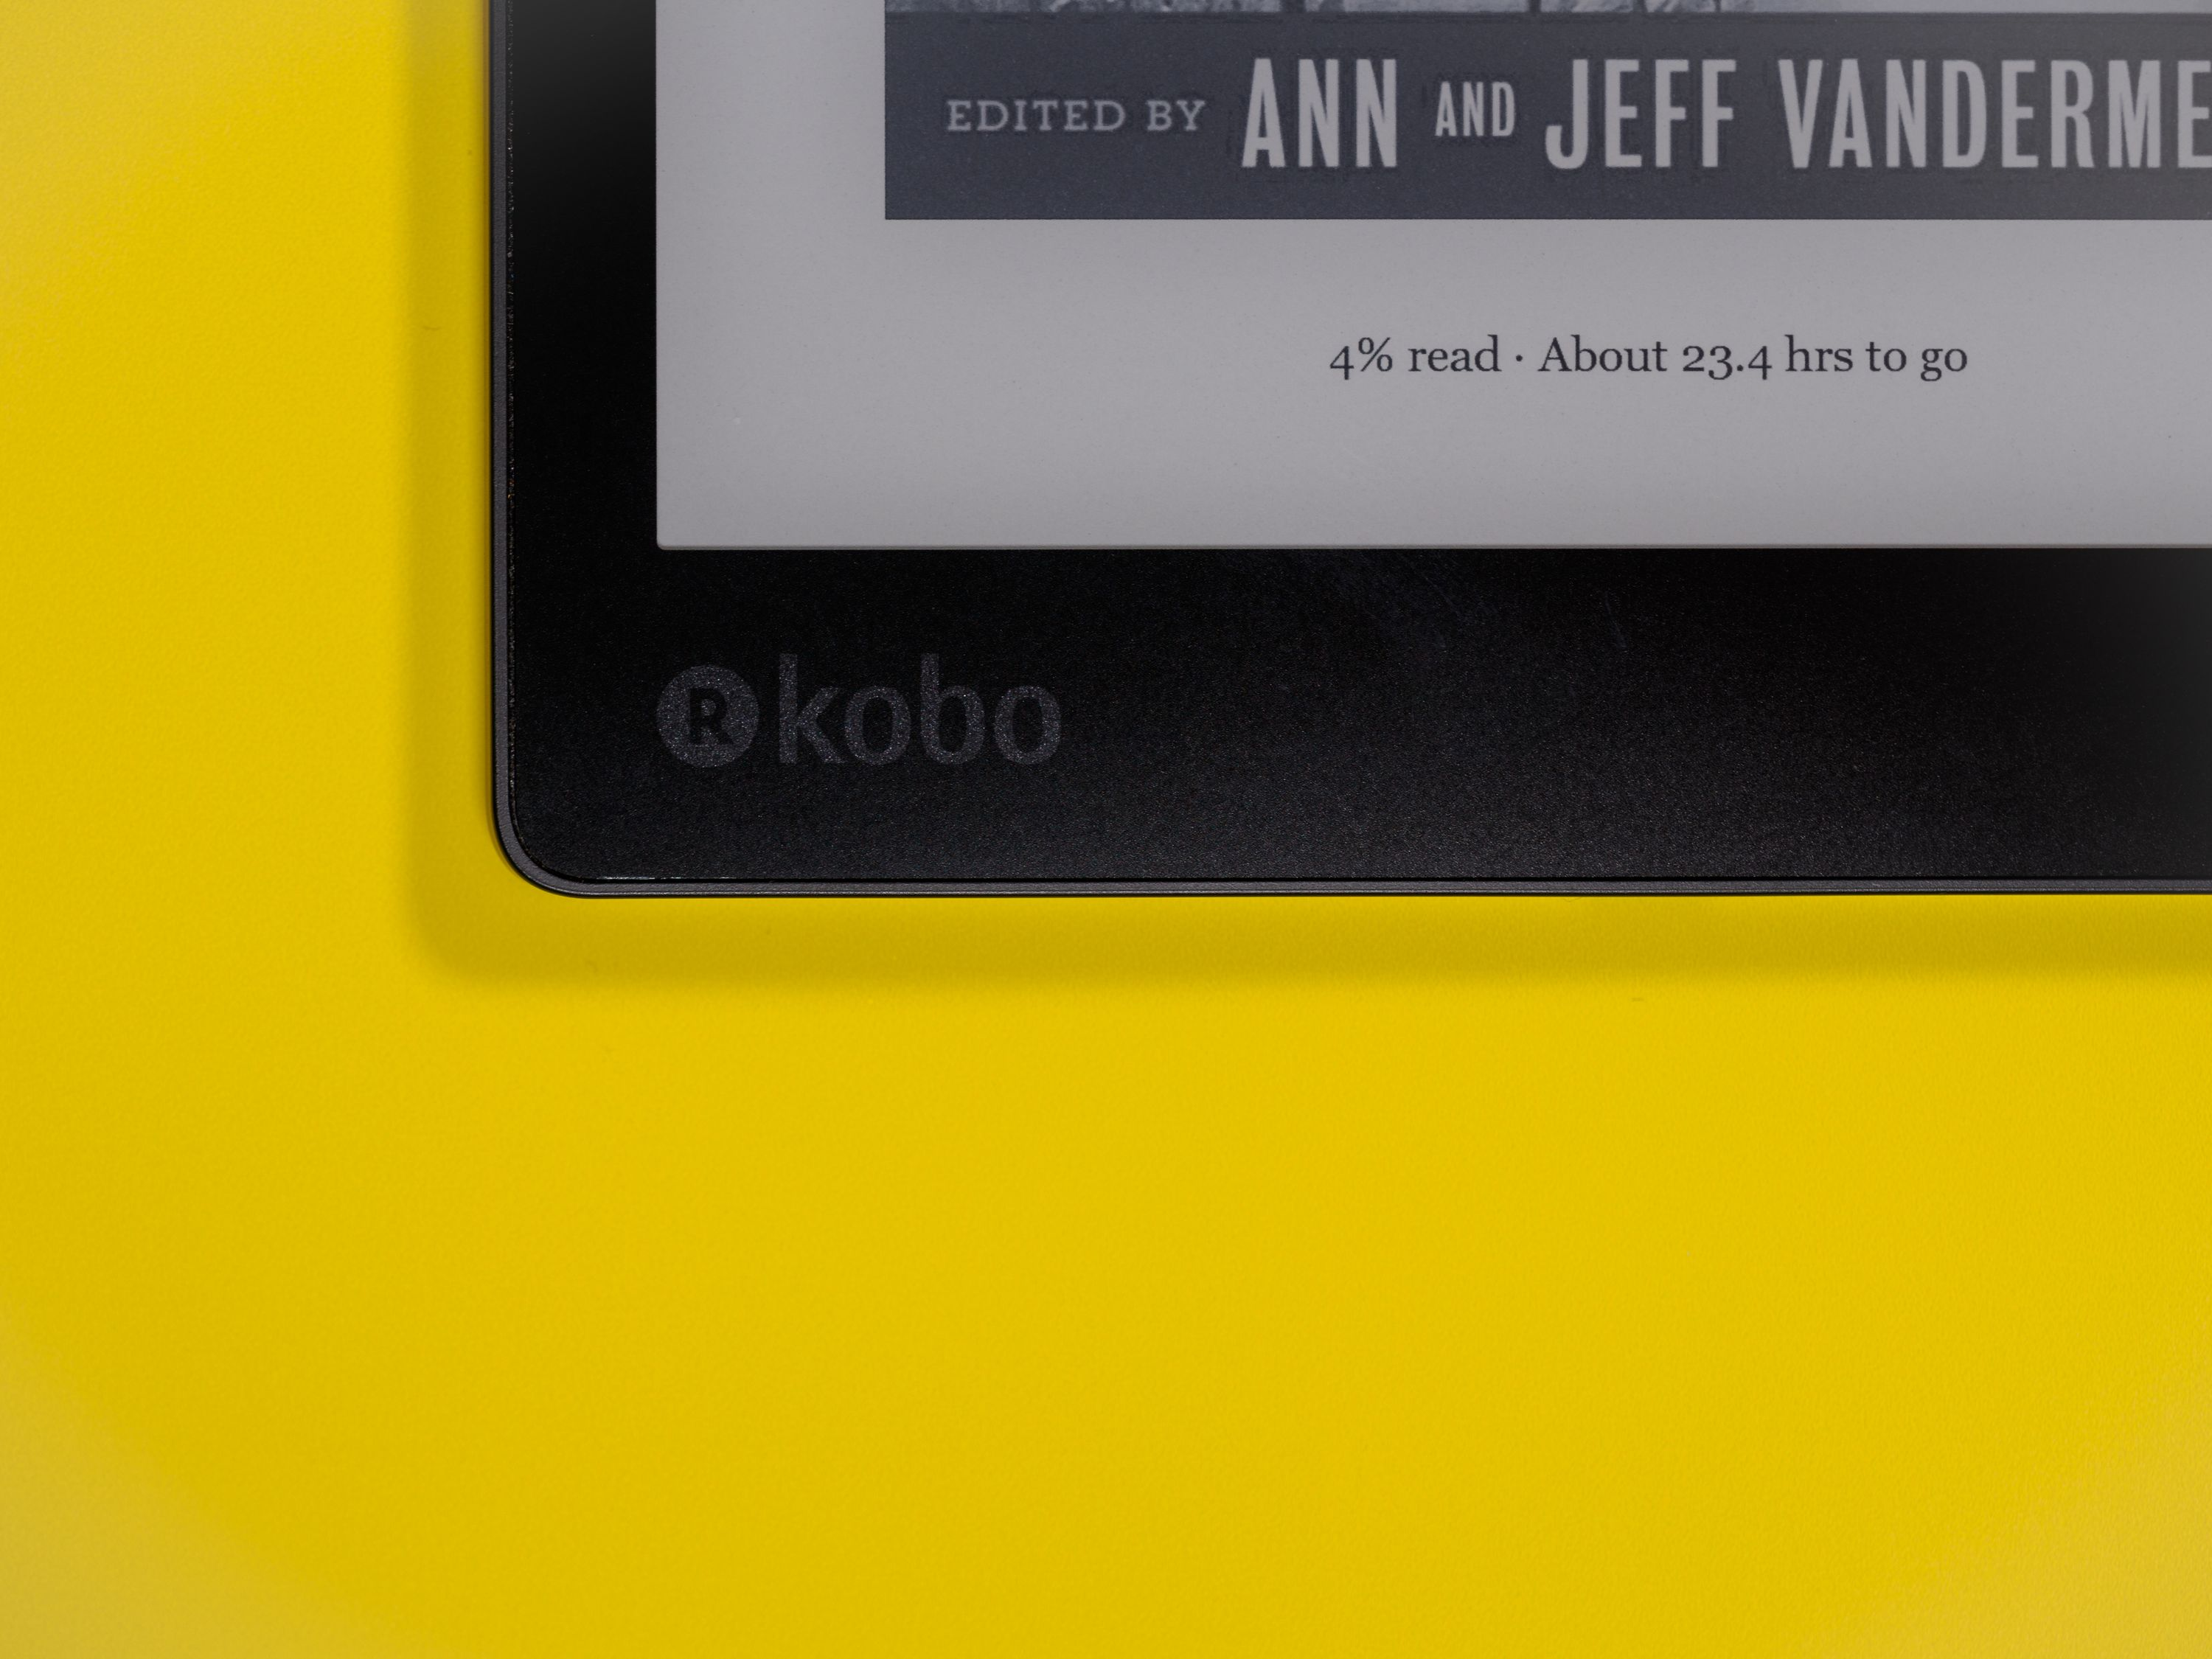 The Aura One, like all Kobo devices, displays your reading progress and book/article cover on the screen while it's asleep. Such a convenient, helpful affordance…looking at you here, Amazon.